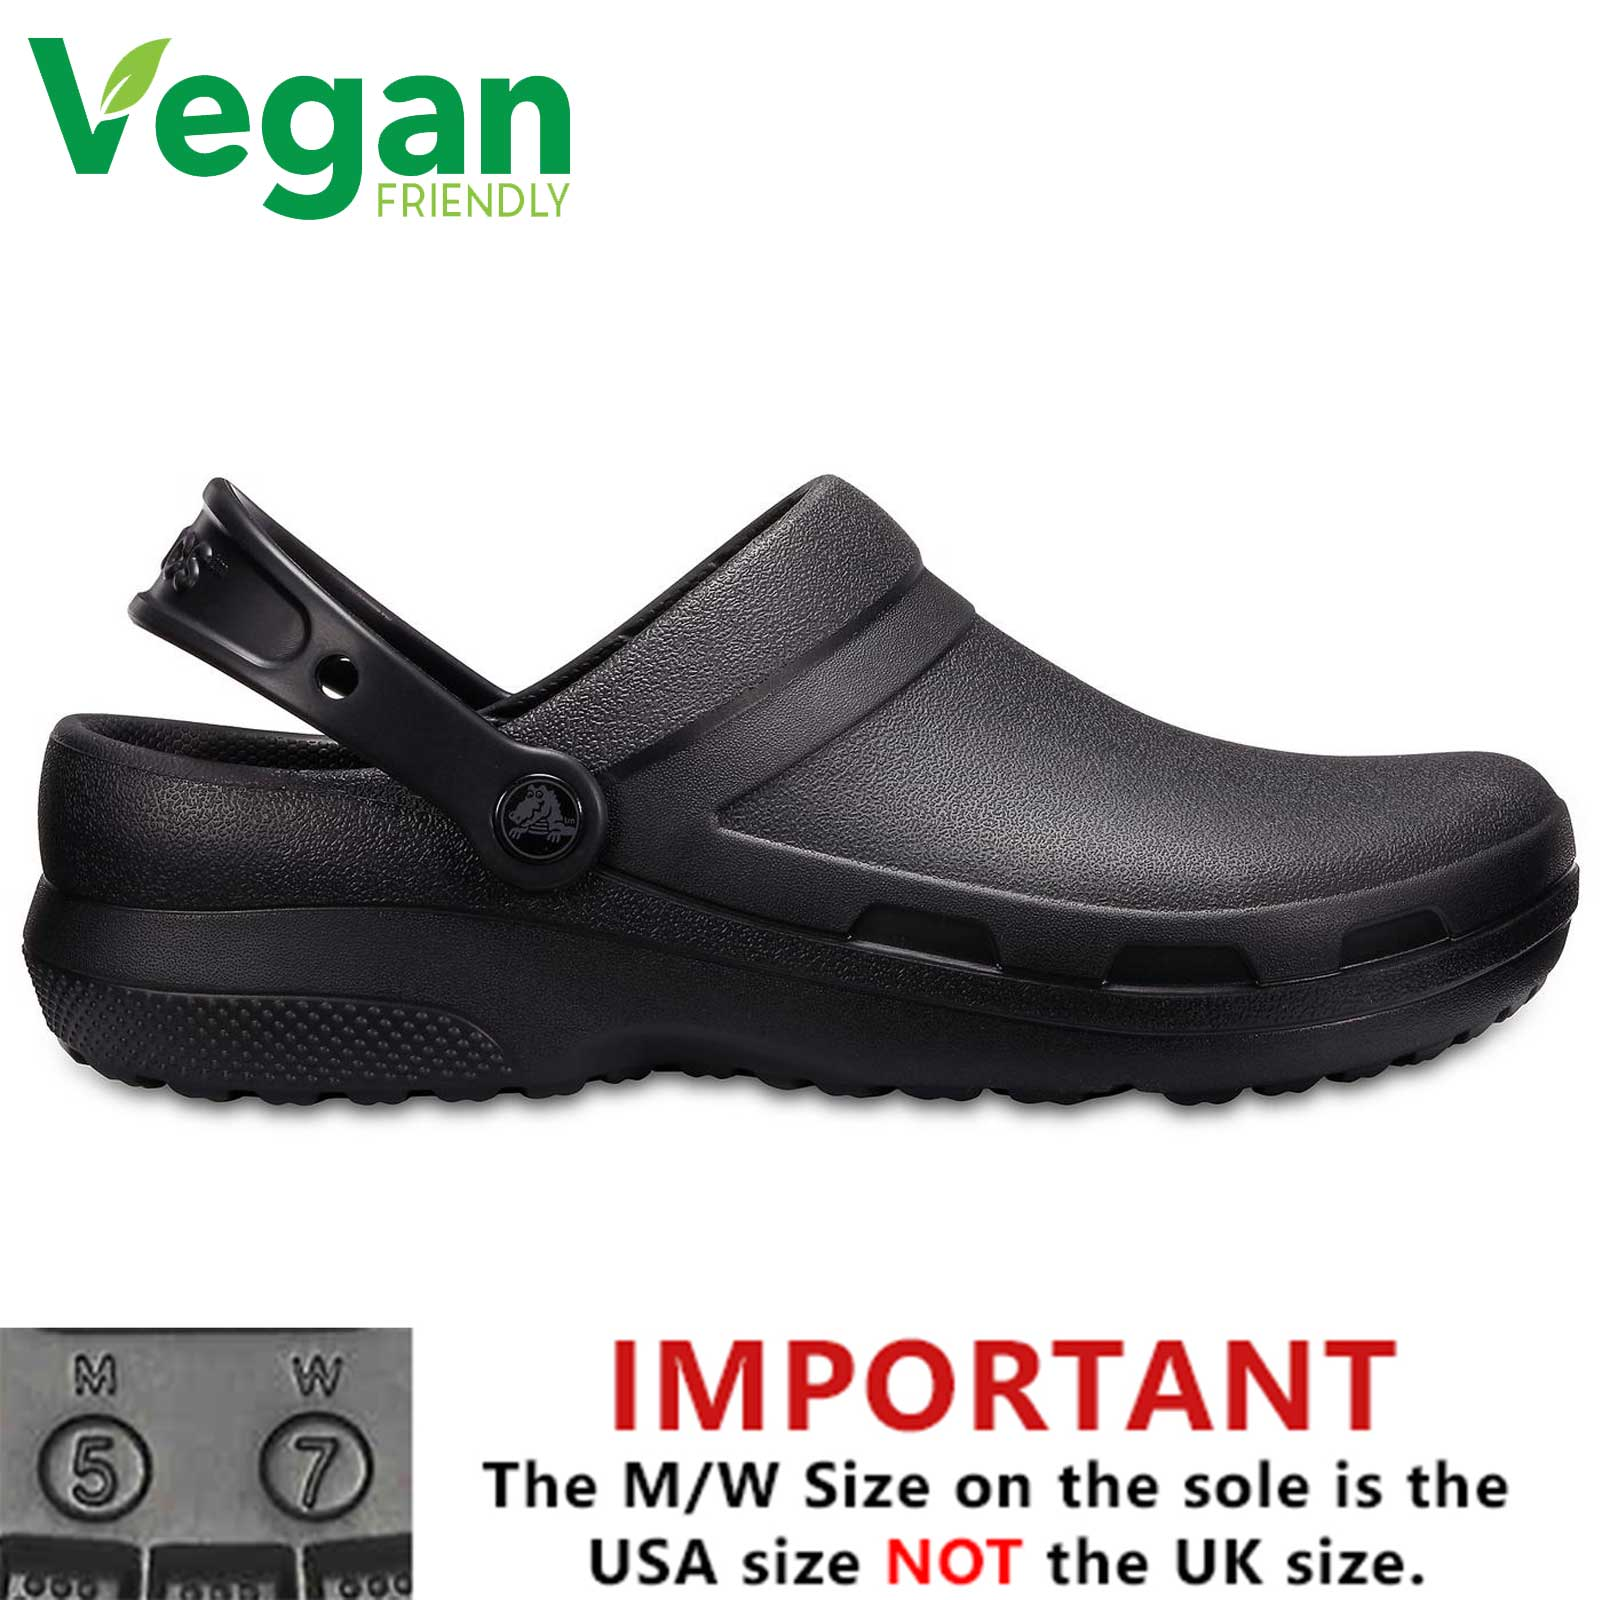 906b110fc4fd2 Details about Crocs Specialist II Mens Womens Ladies Medical Chef Work  Clogs Vegan Shoes Size